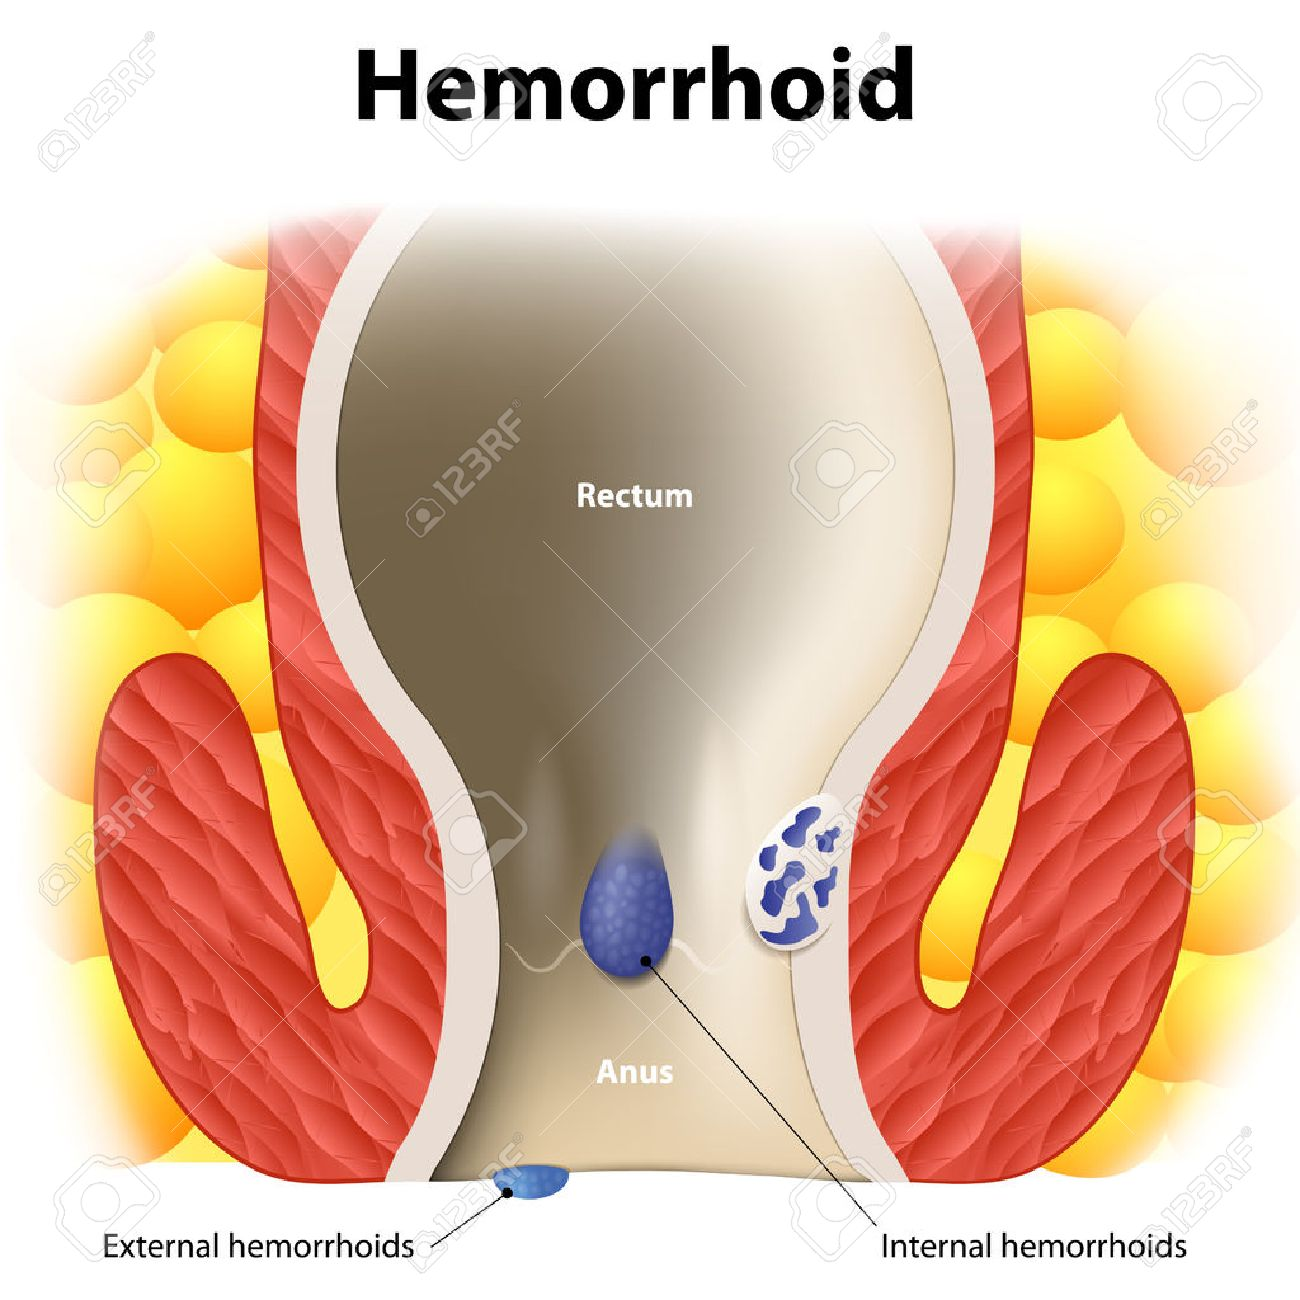 Diagram The Anal Anatomy Internal And External Hemorrhoids